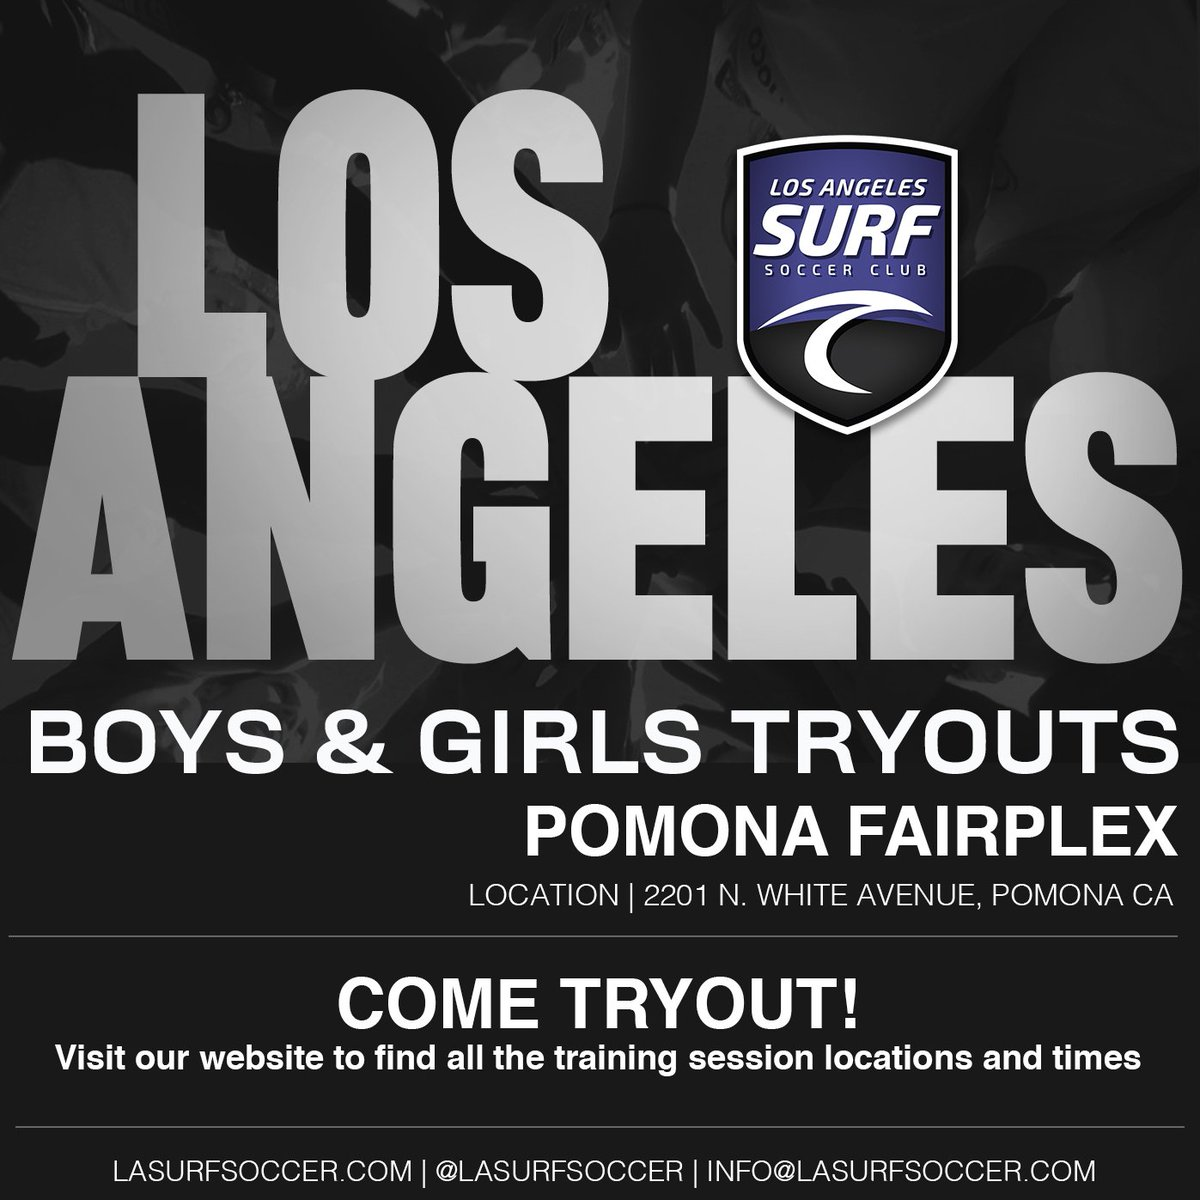 LA SURF   TRYOUTS Come join our tryouts tonight! Visit our website for all times and locations. http://Lasurfsoccer.com/tryouts Follow us on social media @lasurfsoccer for the latest updates. #tryouts #lasurfsoccer #soltilo #pomona #fairplex #sanmarino #pasadena #covina #westcovina